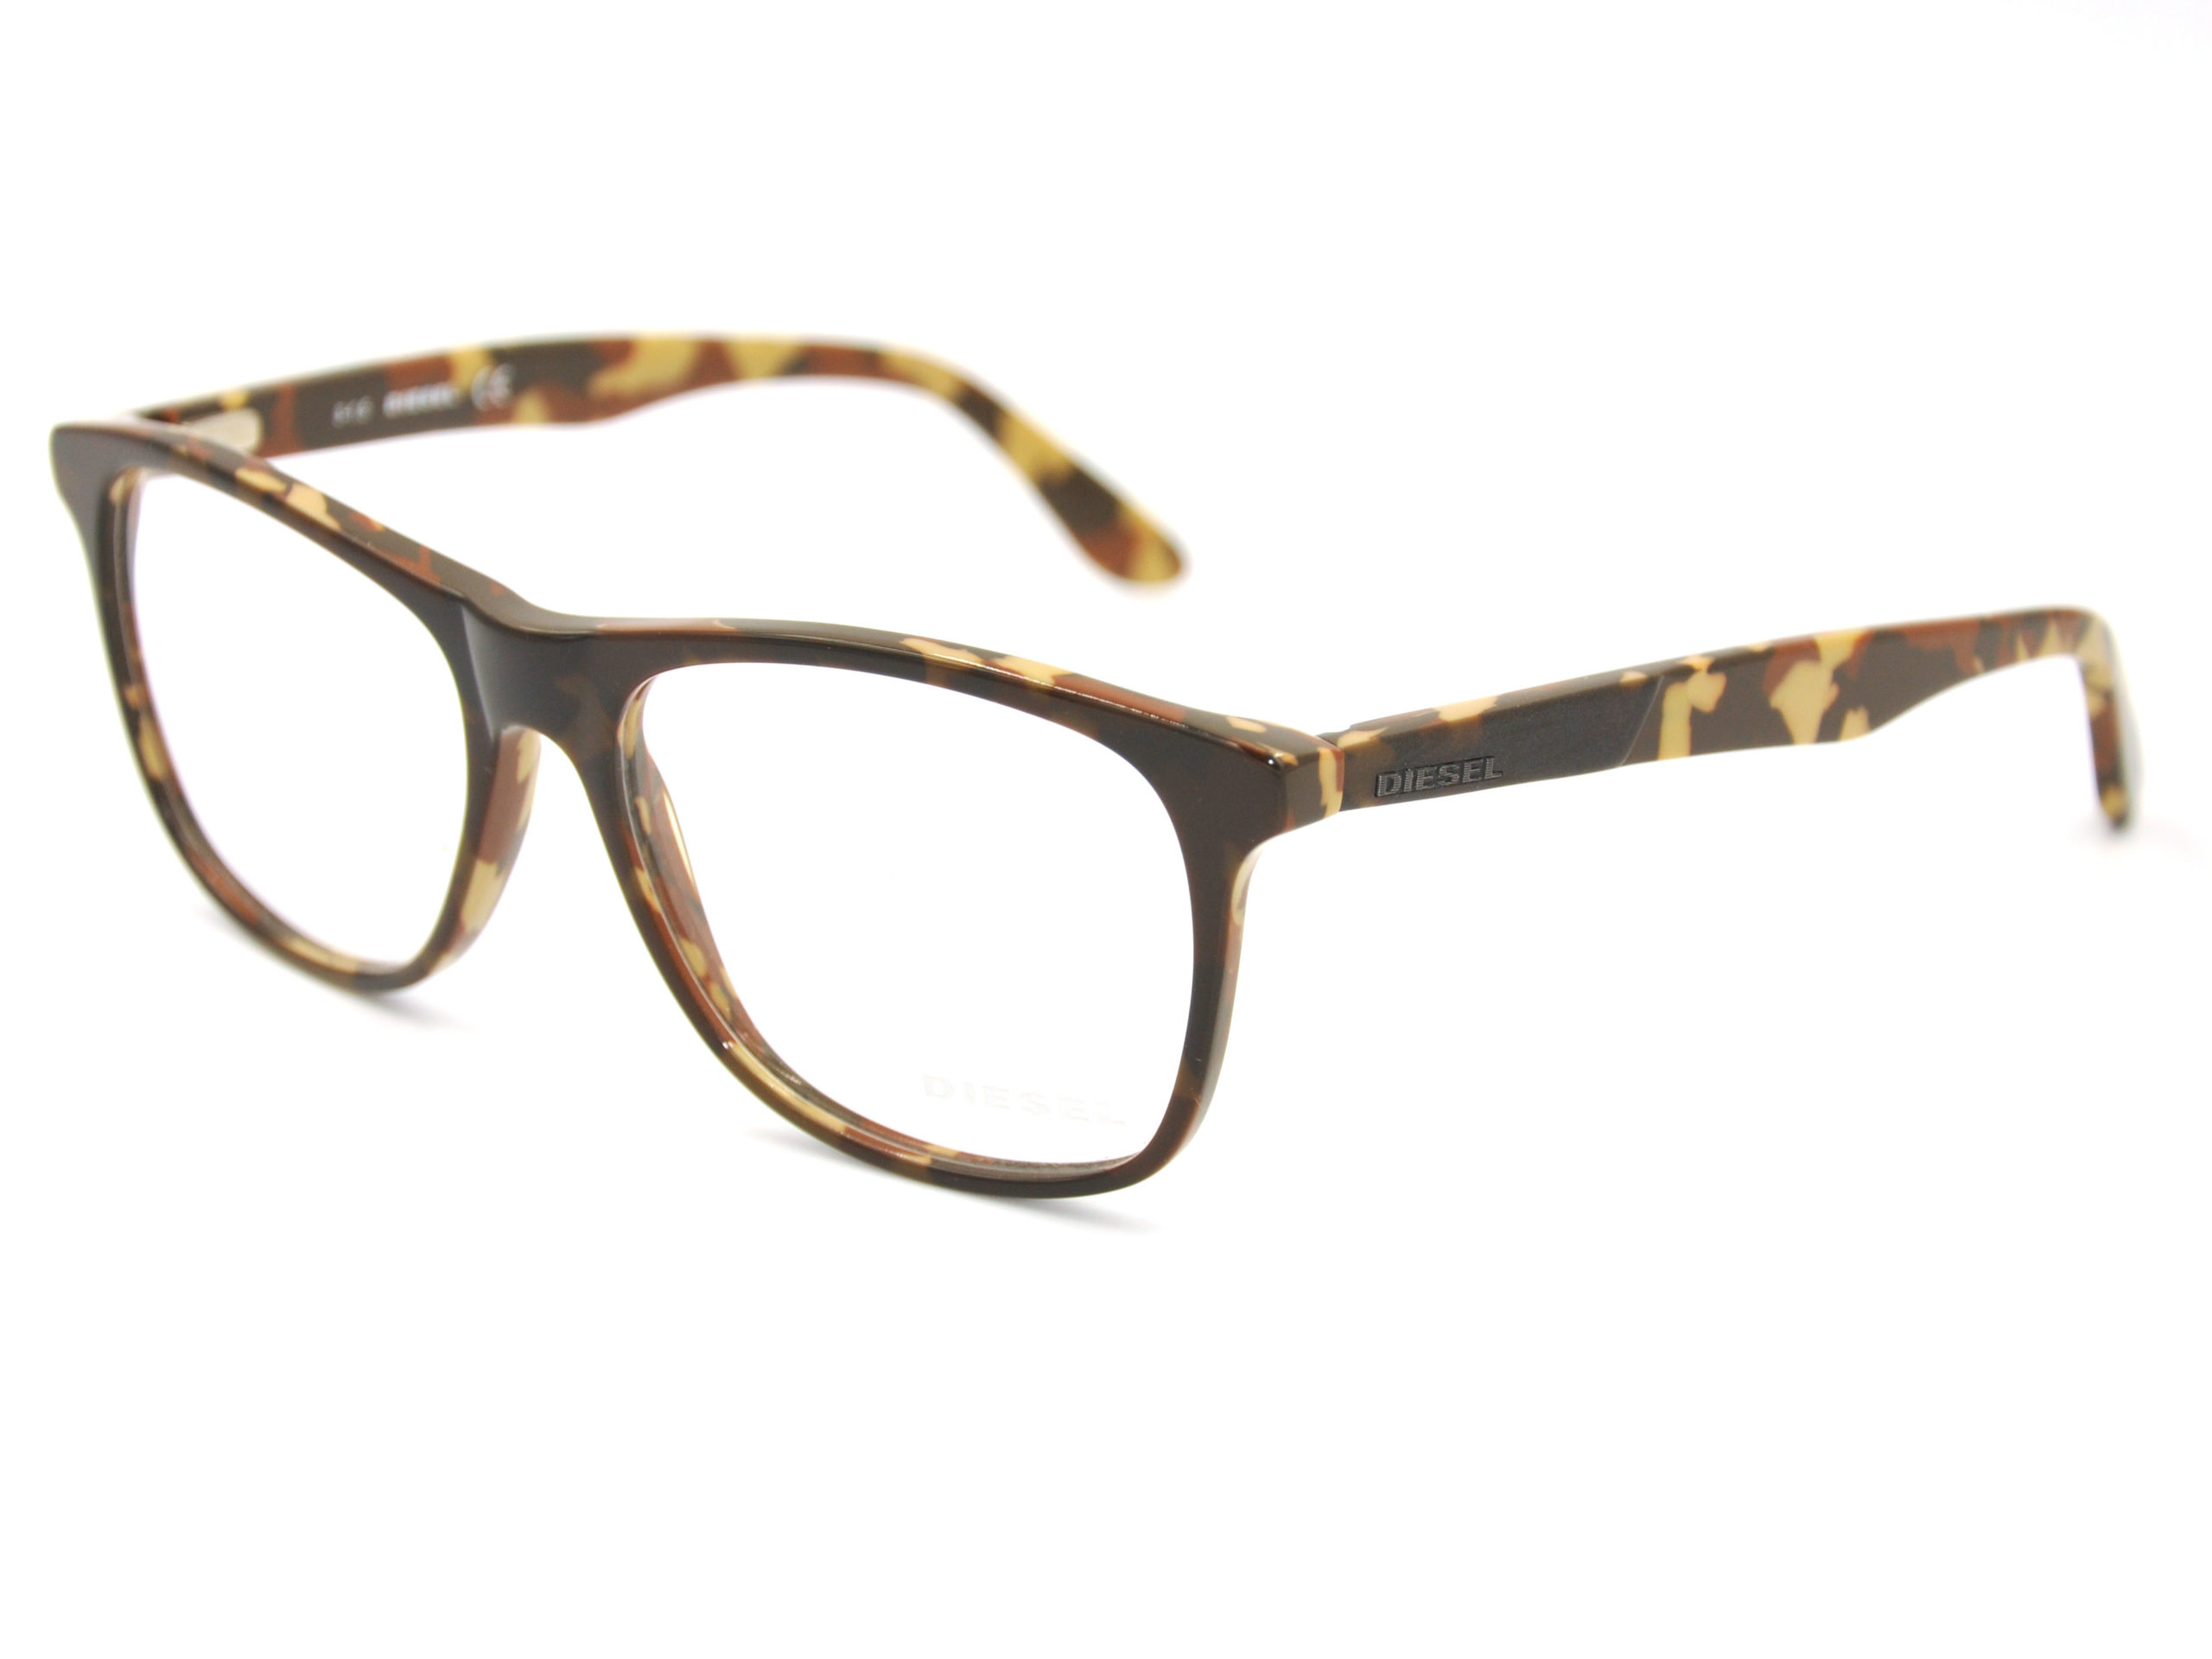 DIESEL DL5167 050 UNISEX Prescription Glasses 2018